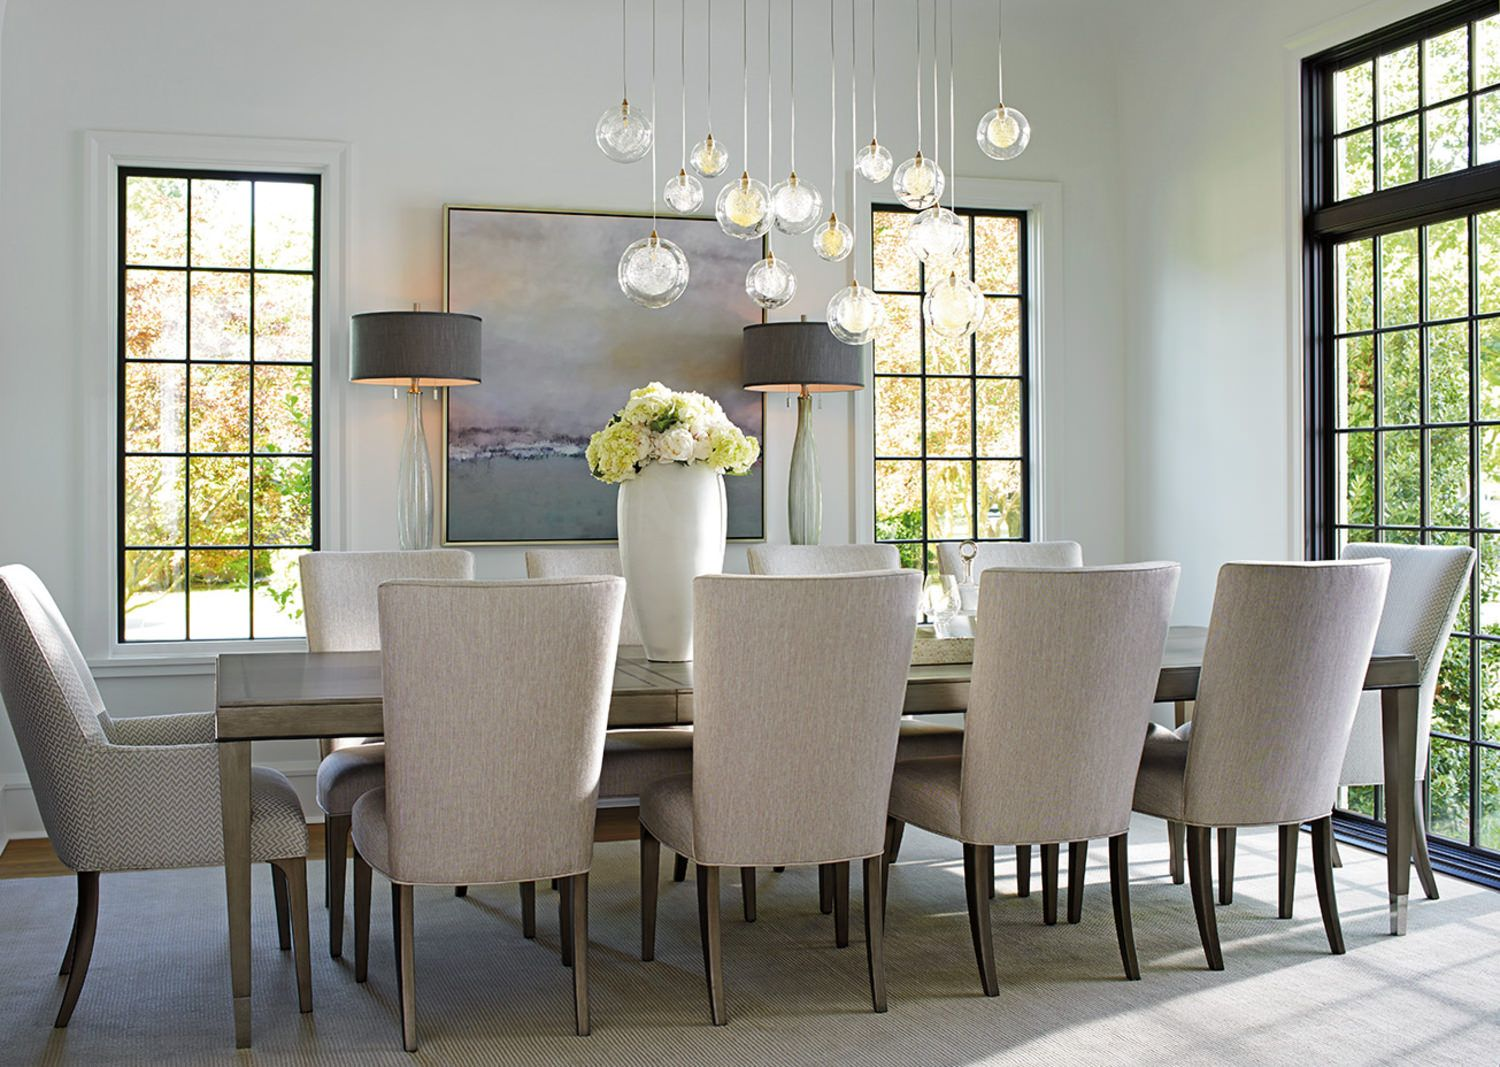 Ariana Dining Table By Lexington Gabberts On Clearance 3197 60 7 Pieces Rectangular Dining Table Dining Room Decor Dining Room Sets